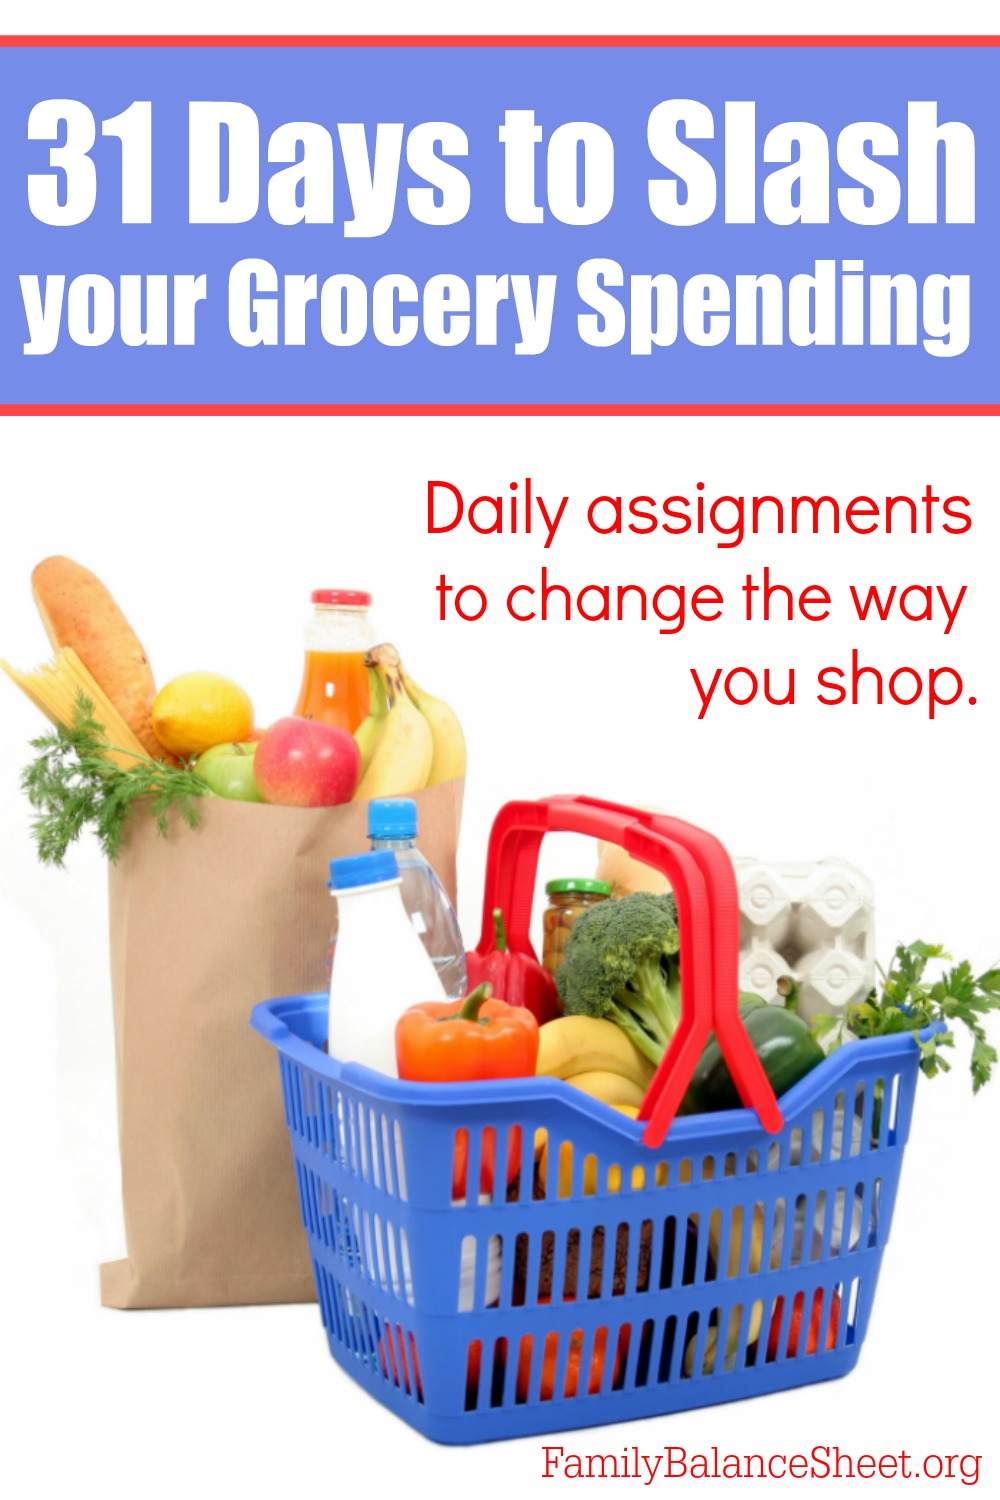 31 Days to Slash your Grocery Spending master